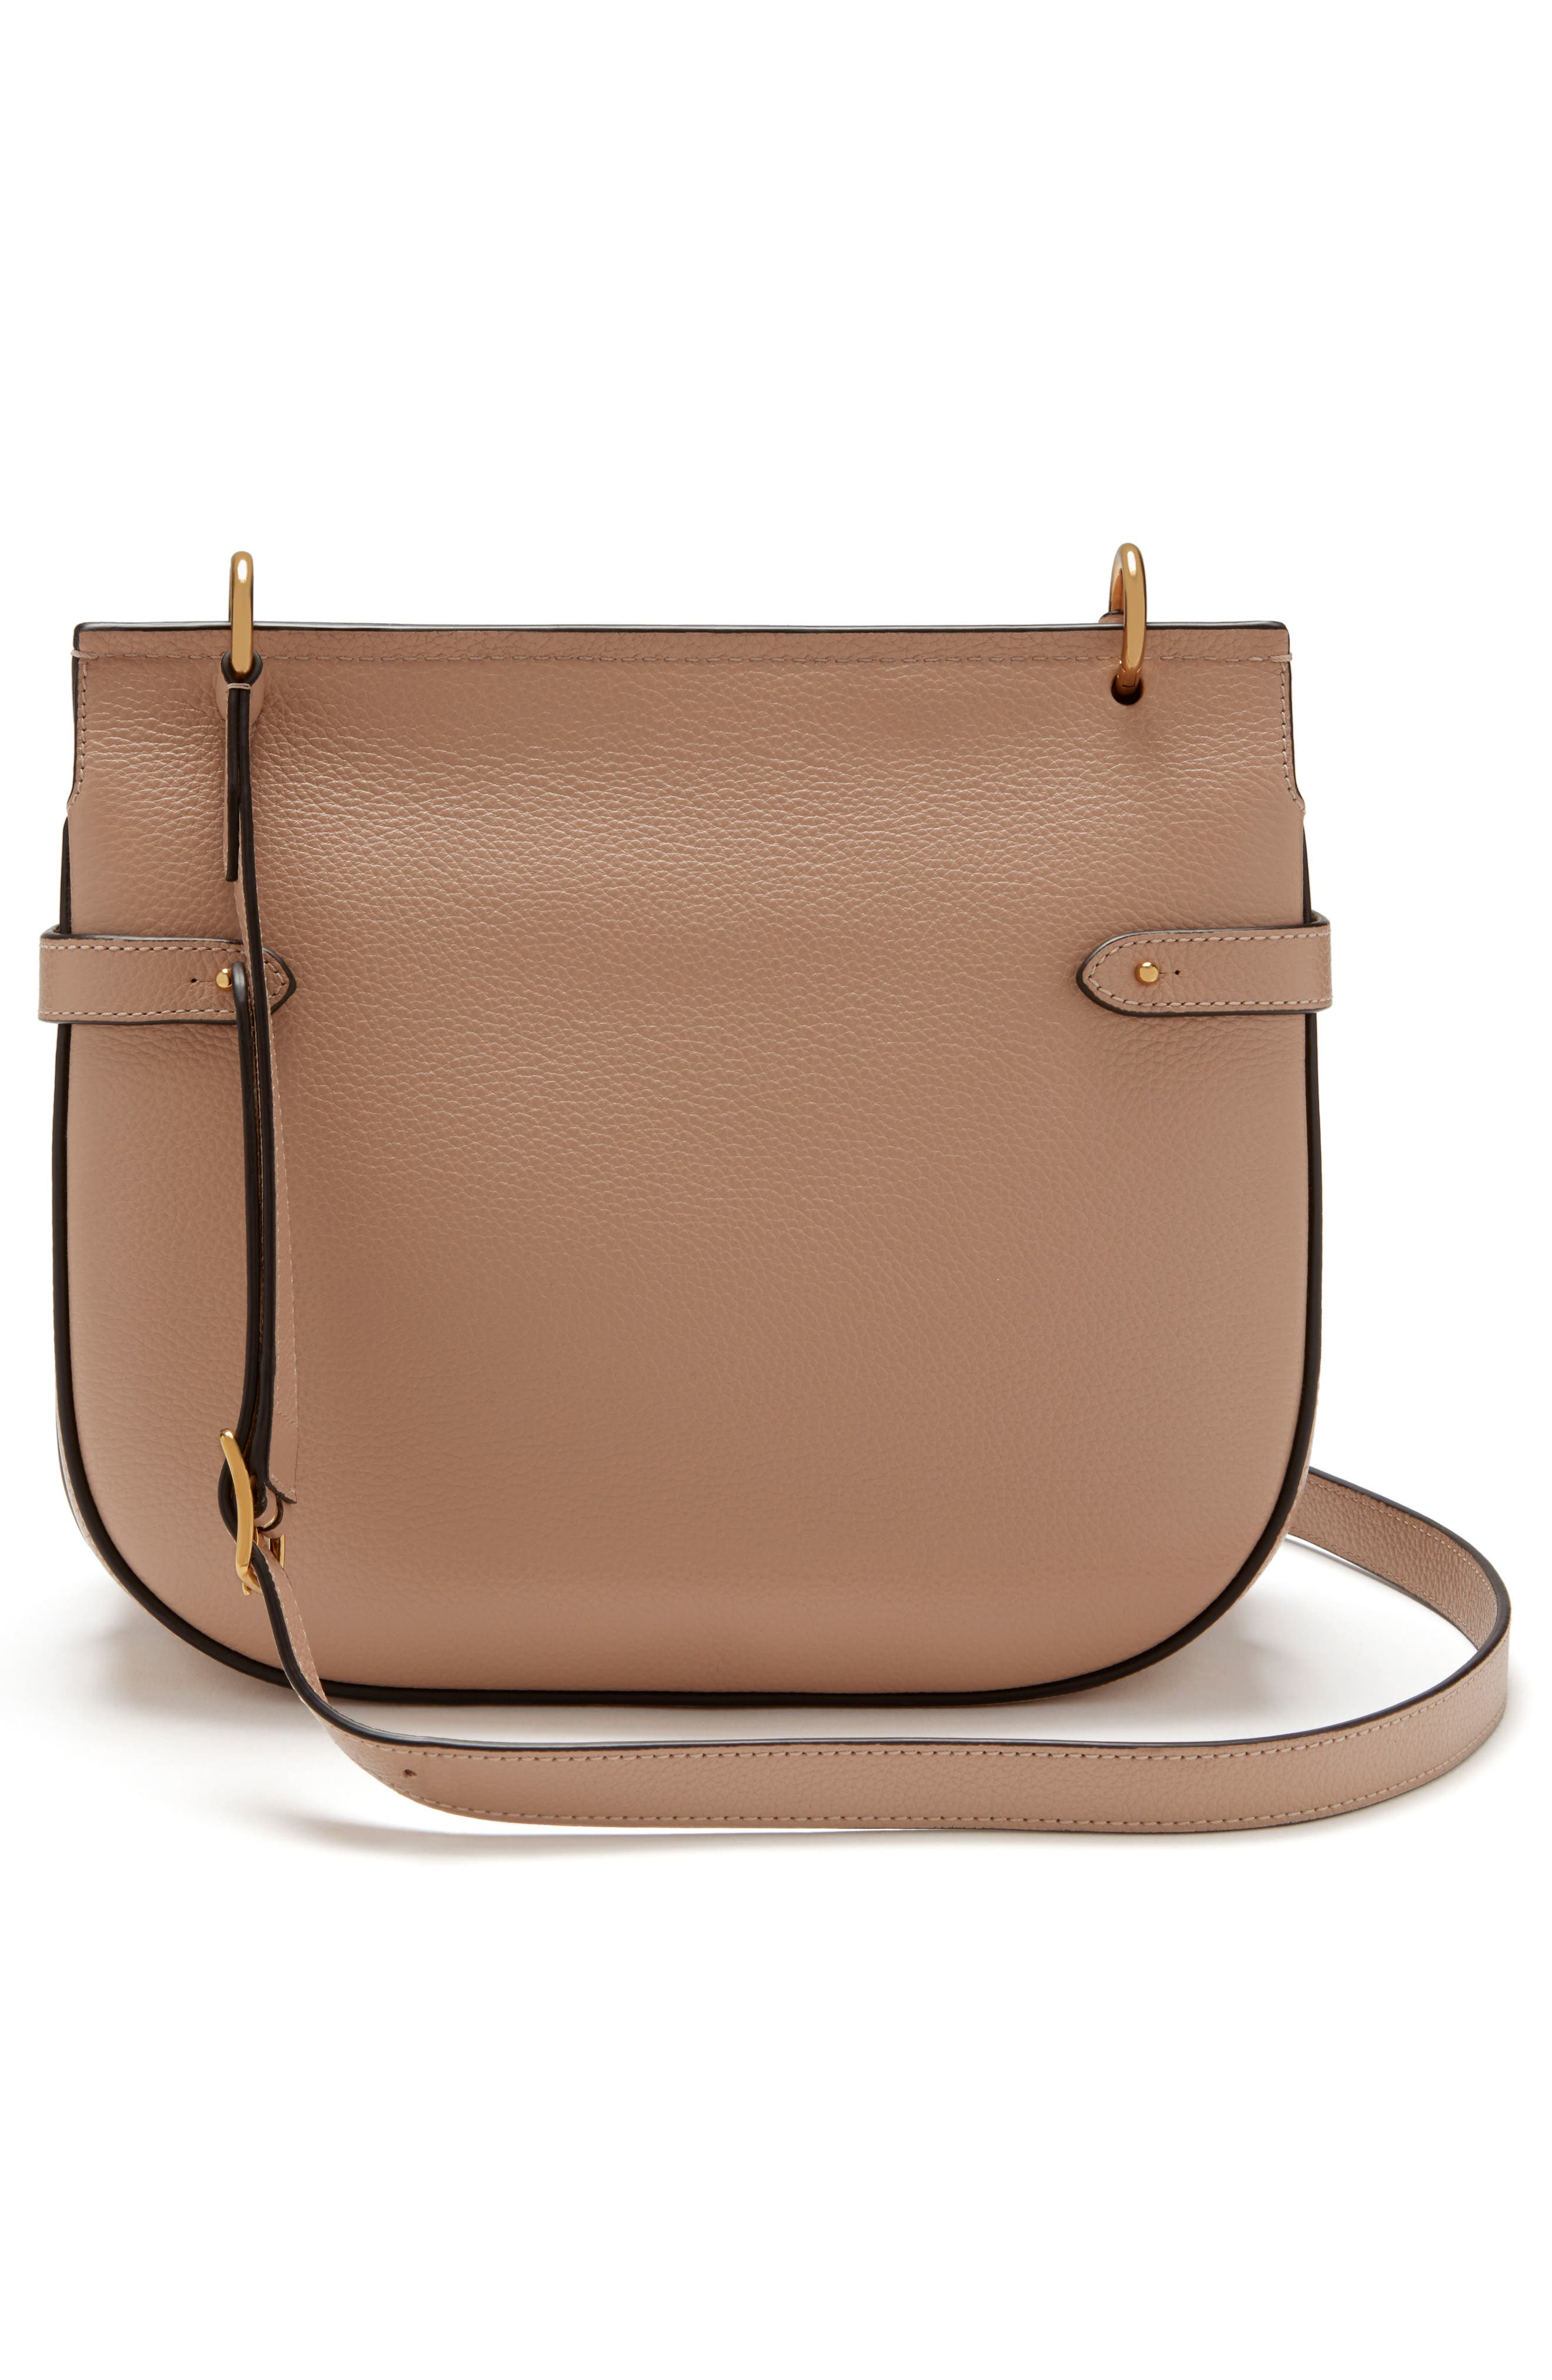 Amberley Leather Crossbody Bag,                             Alternate thumbnail 2, color,                             ROSEWATER